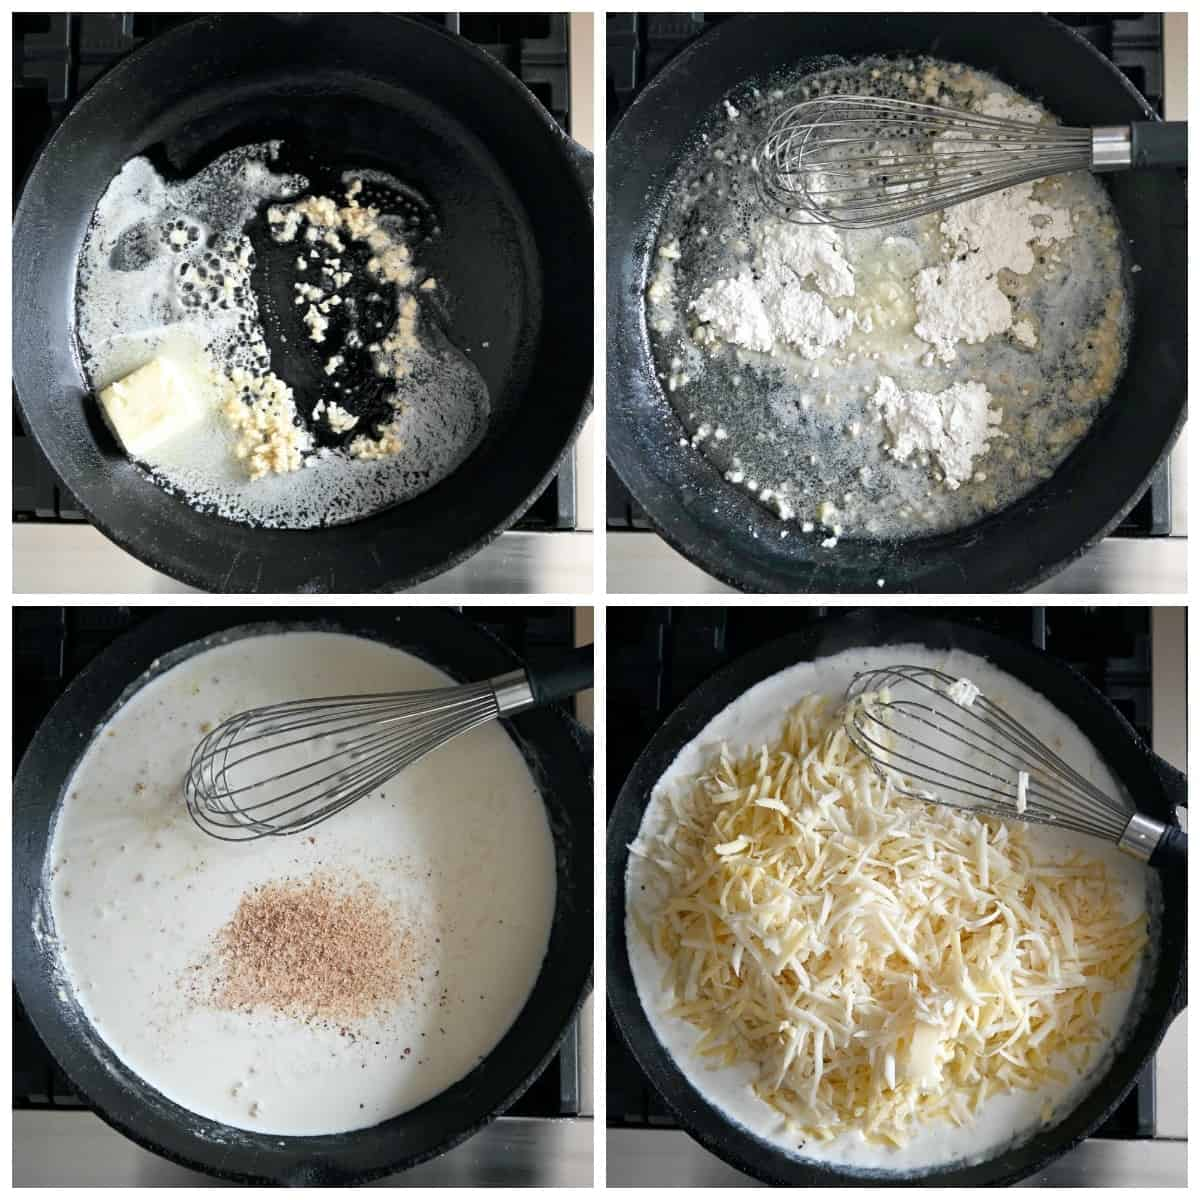 Four process photos. First one, butter and garlic being melted in a cast iron skillet. Second one, flour added to the ,melted butter. Third one, half n half and spices added to the skillet. Fourth one, shredded cheese added into the mixture.